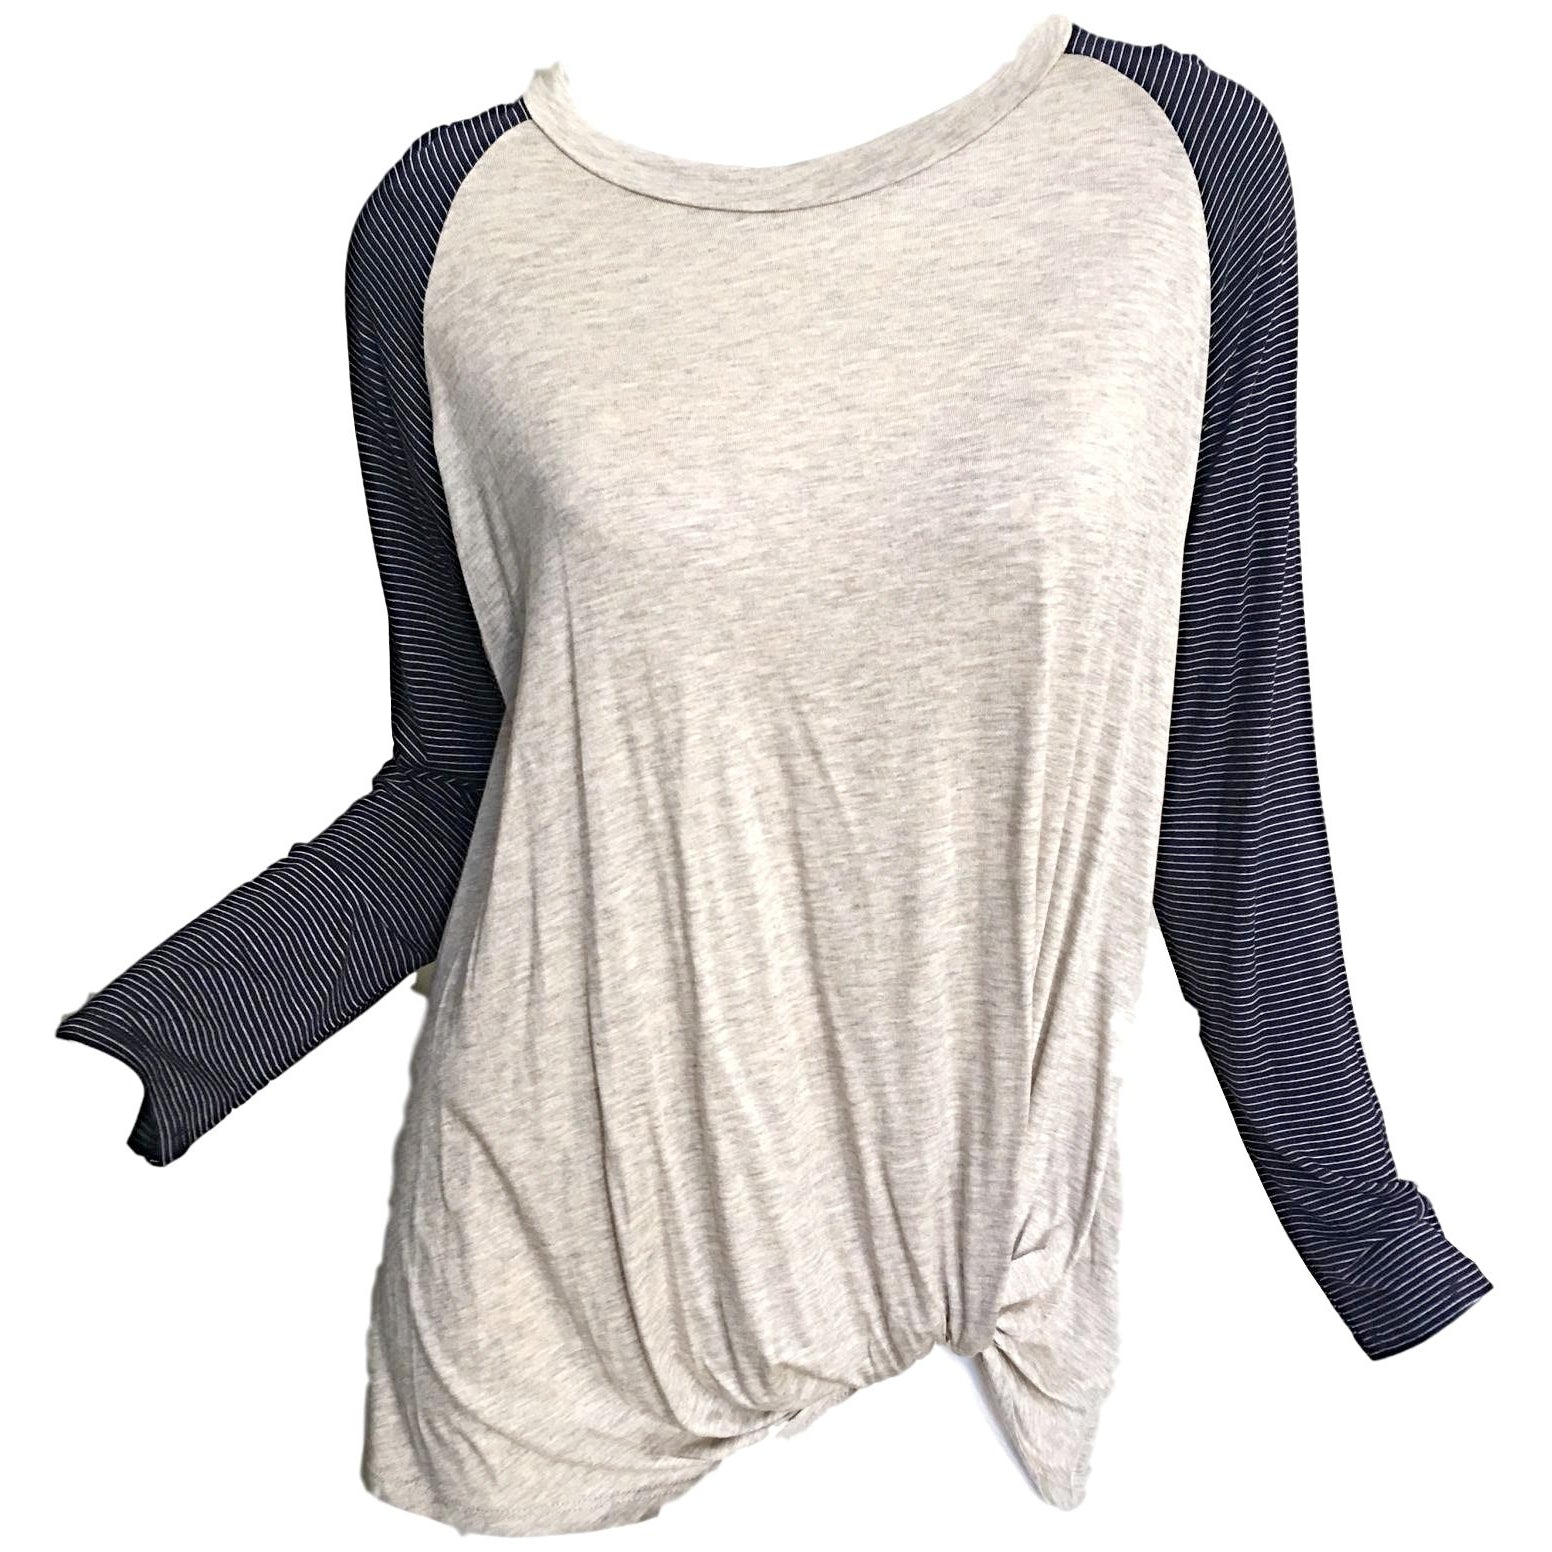 SALE ! Laura Jersey Top, Navy/Oatmeal - Glamco Boutique